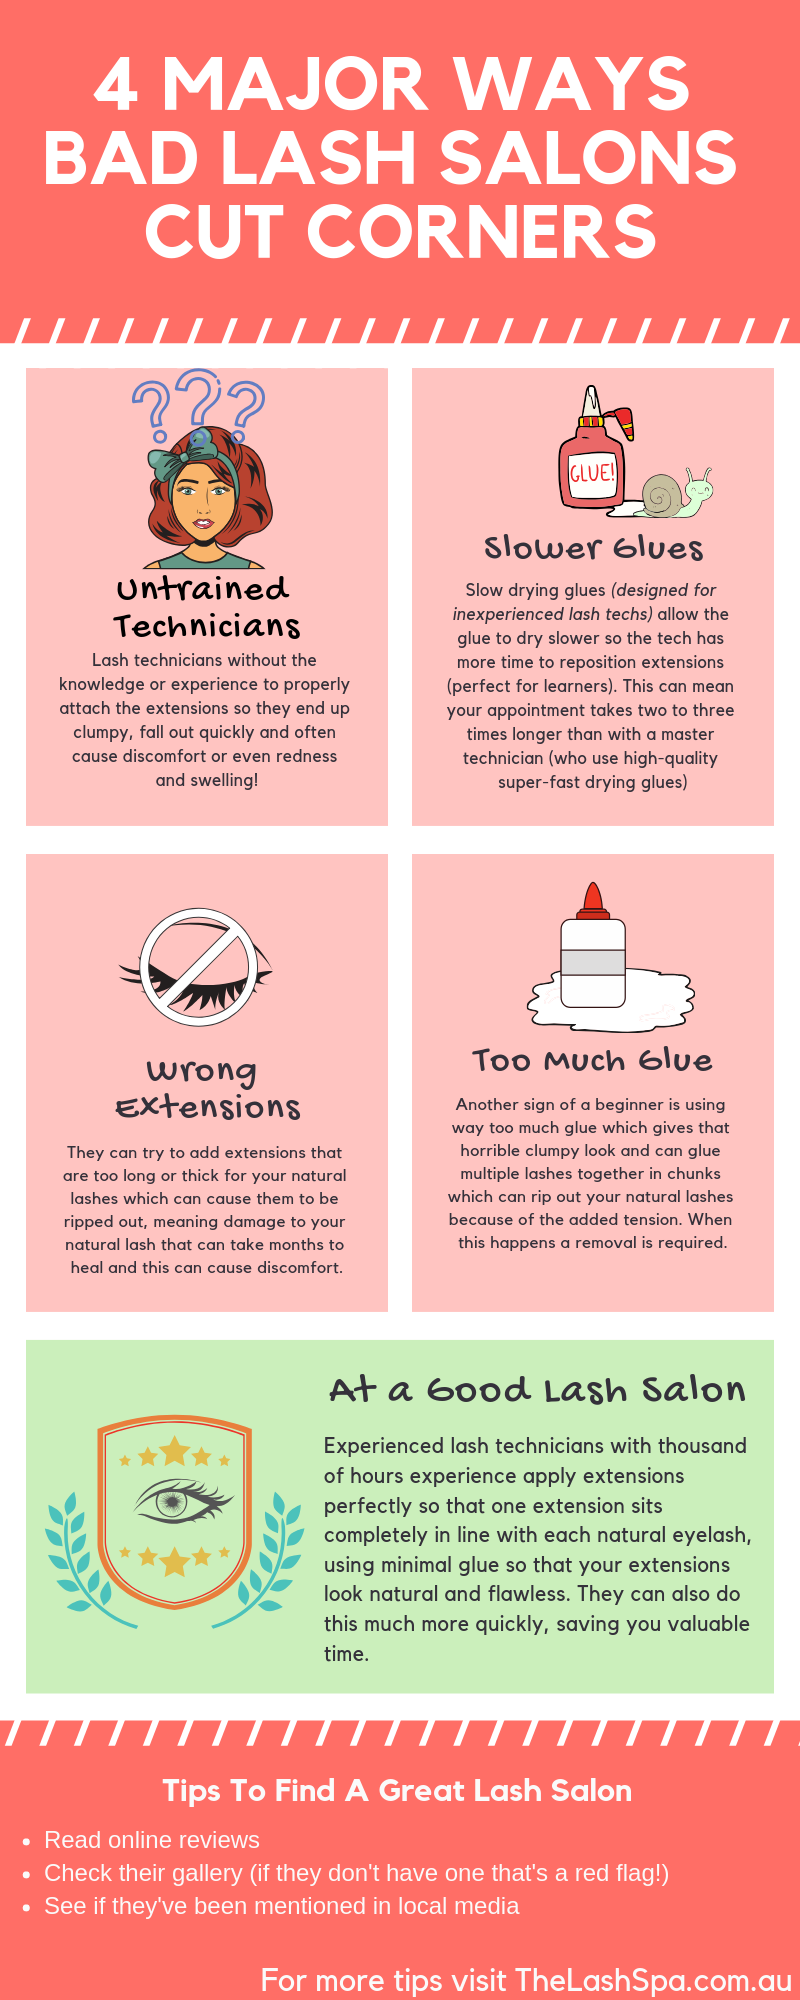 4 Major Ways Bad Lash Salons Cut Corners